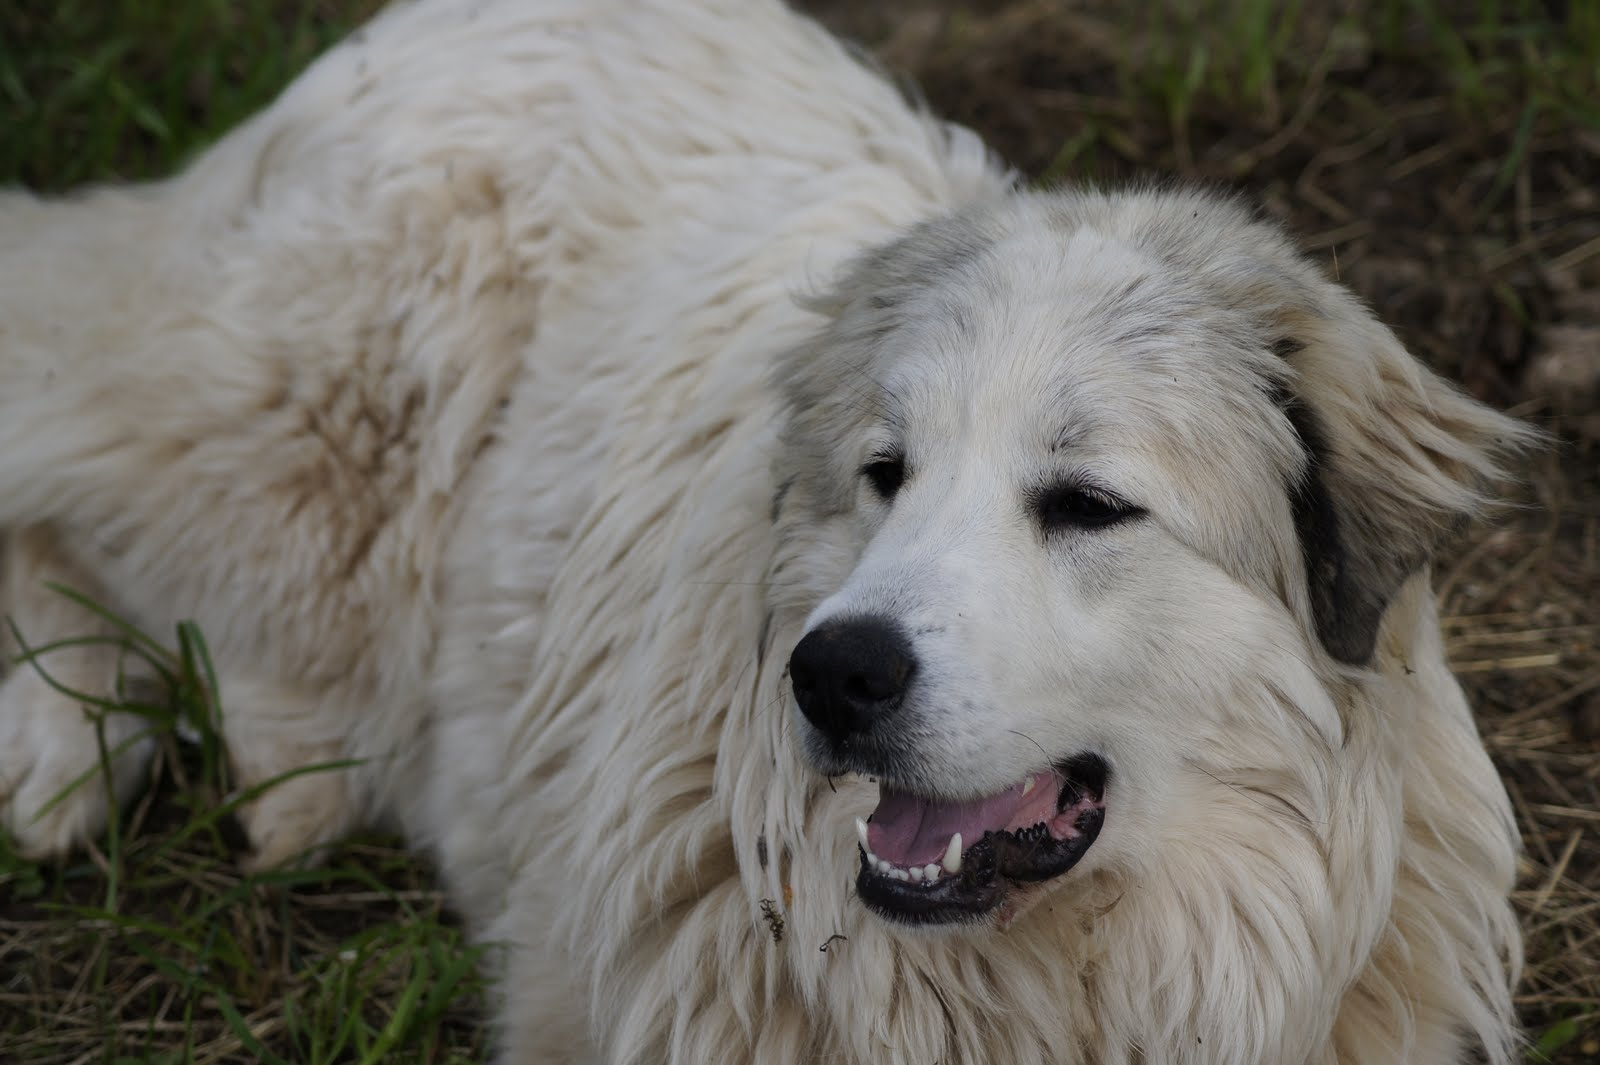 Snowball The Great Pyrenees Dogs Daily Puppy Imagejpg | Dog Breeds ...